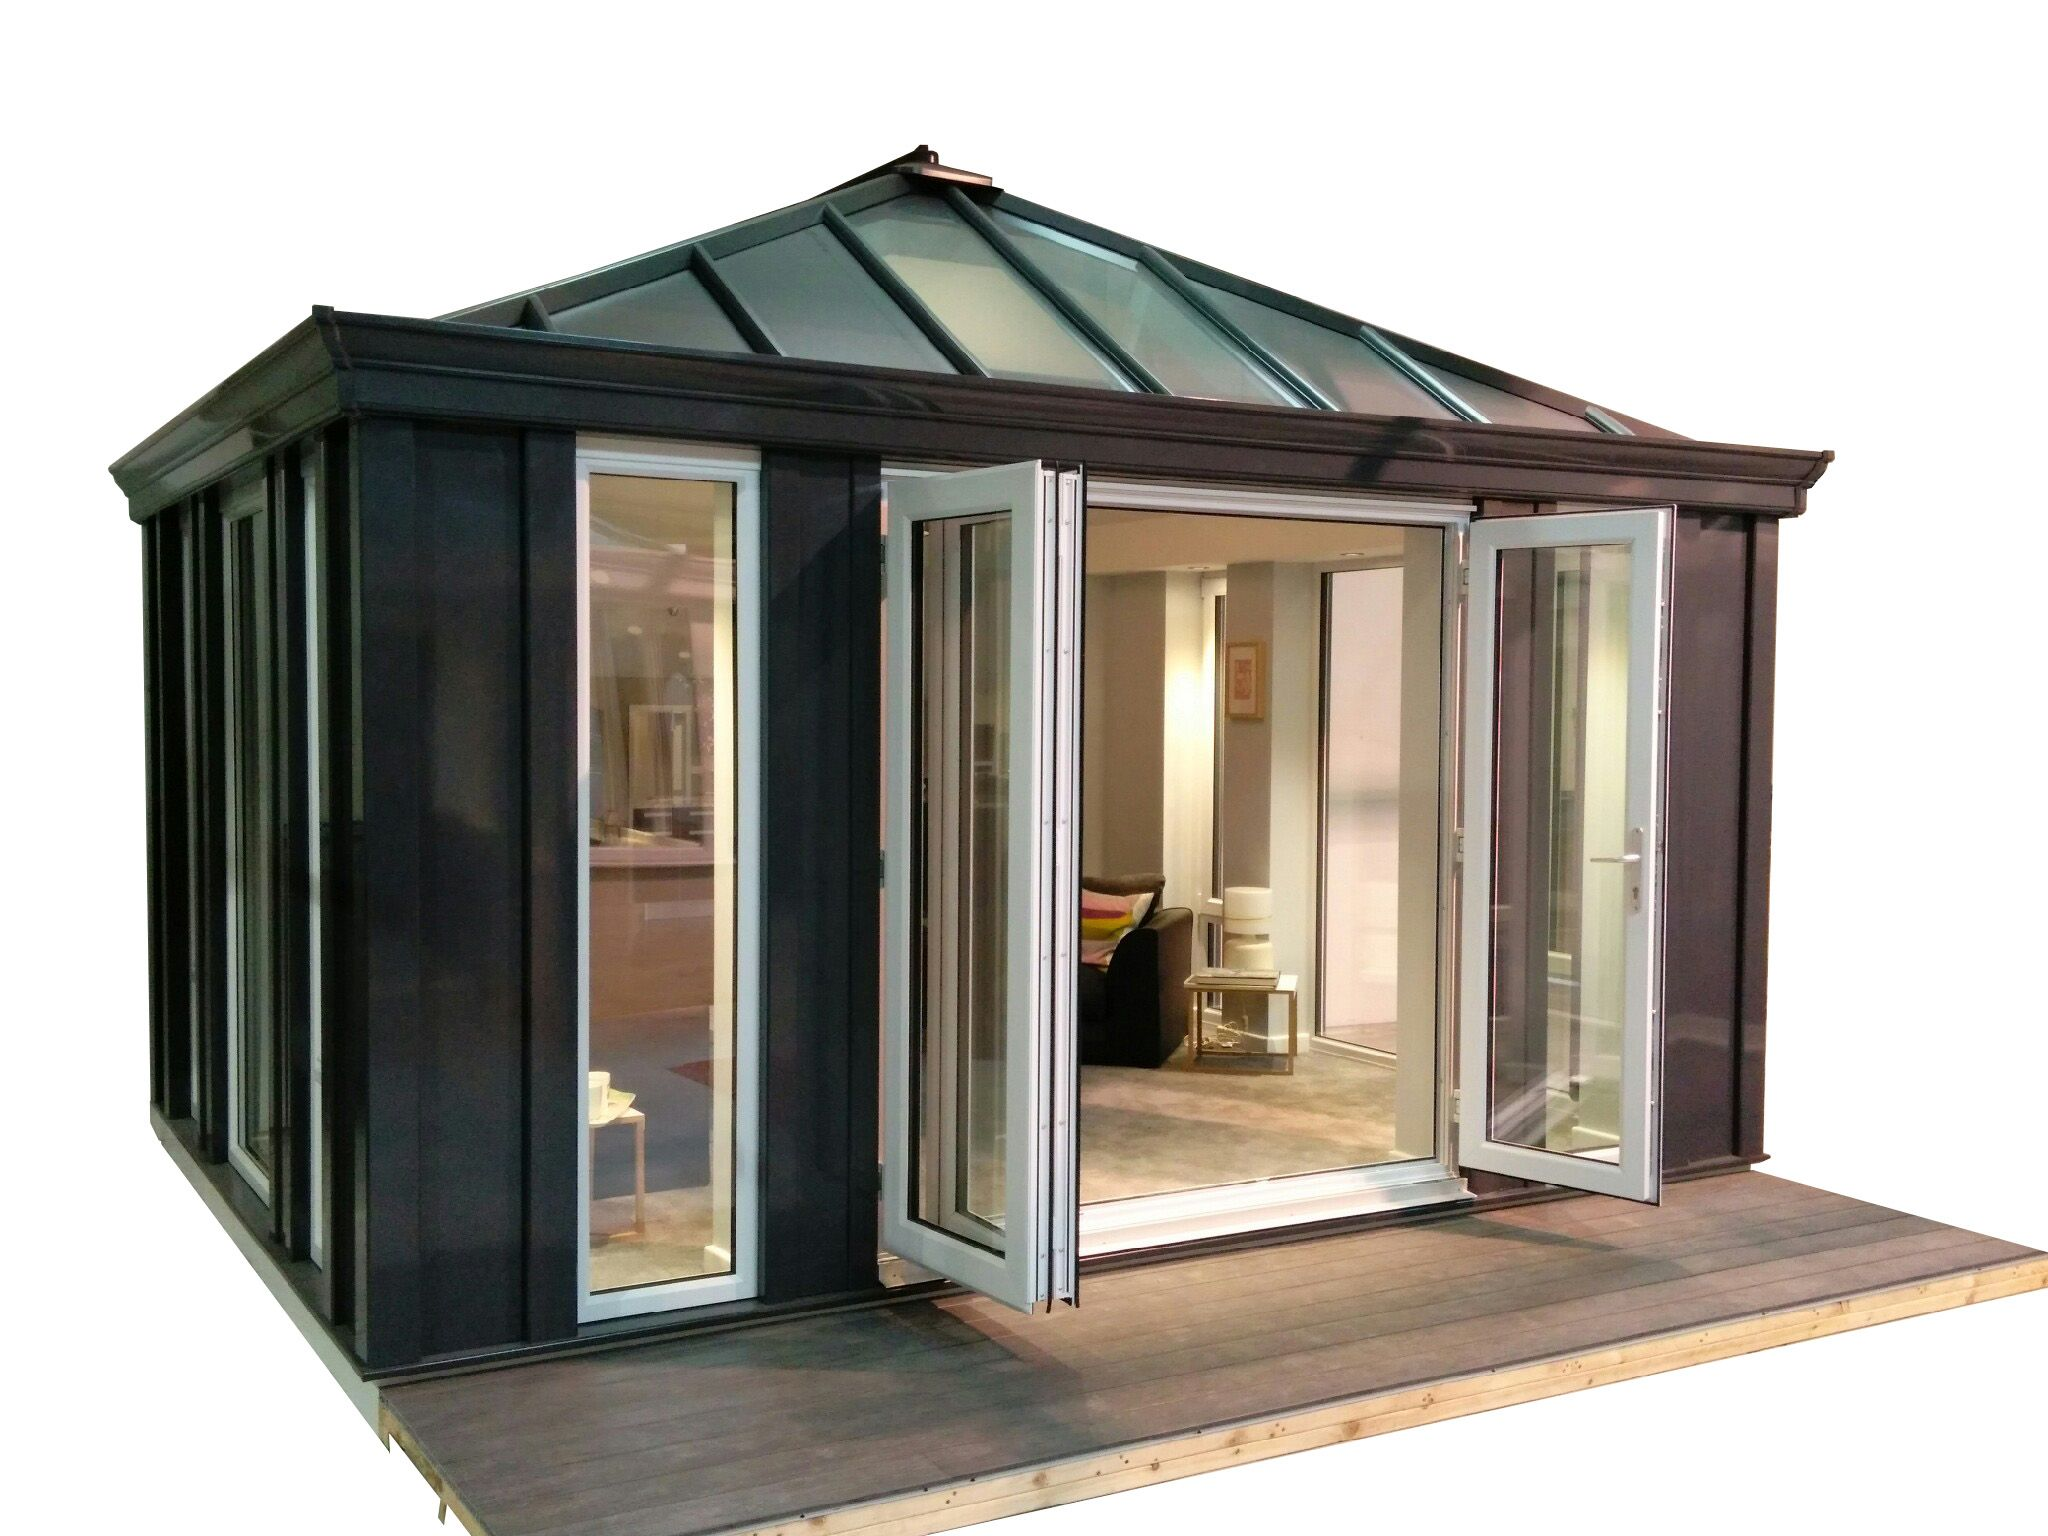 Harlington Extension Ultraframe Extension Collection Conservatory Roof Architecture House Extensions